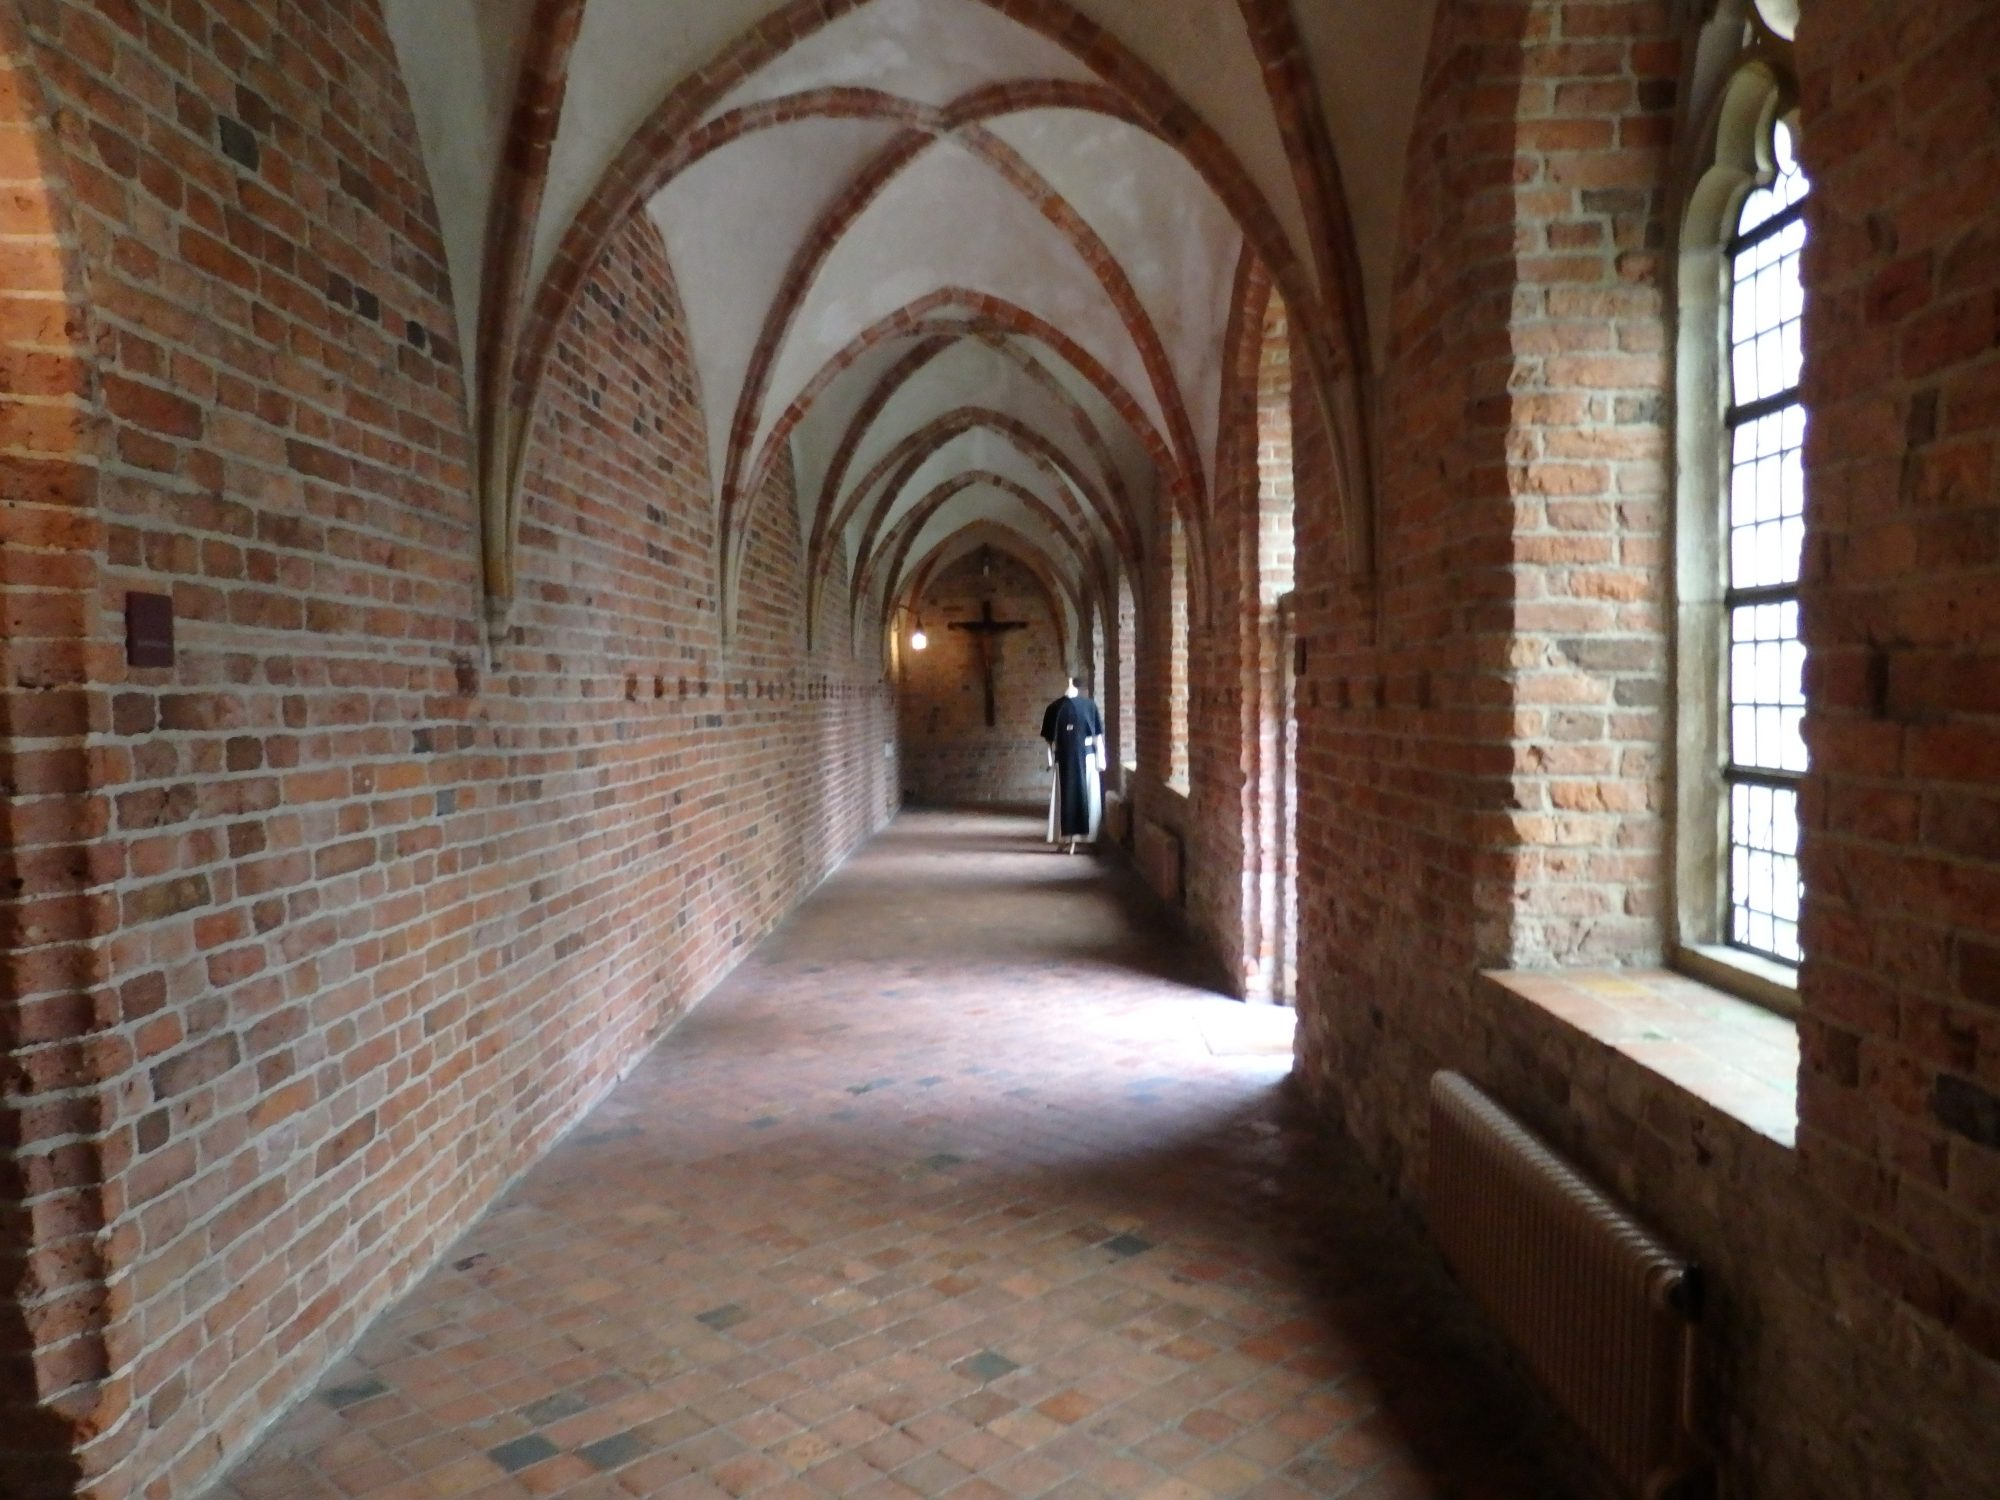 One of the interior garden's cloister walkways in Ter Apel Cloister in the Netherlands